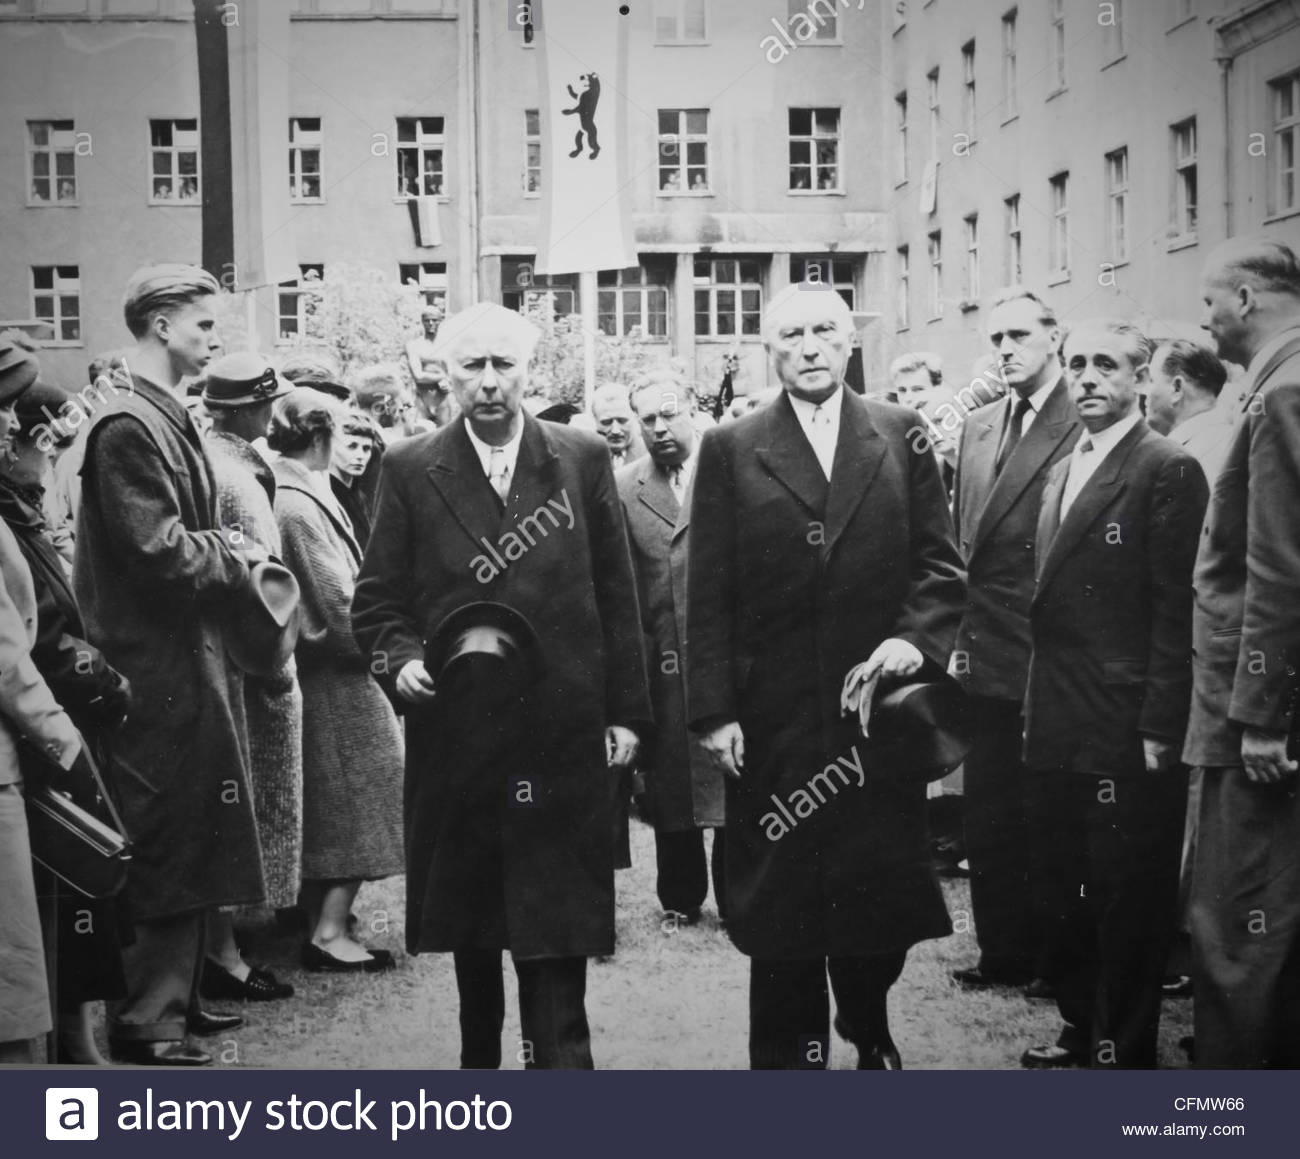 Theodor Heuss and Kondrad Adenauer, former President and Chancellor of Germany - Stock Image